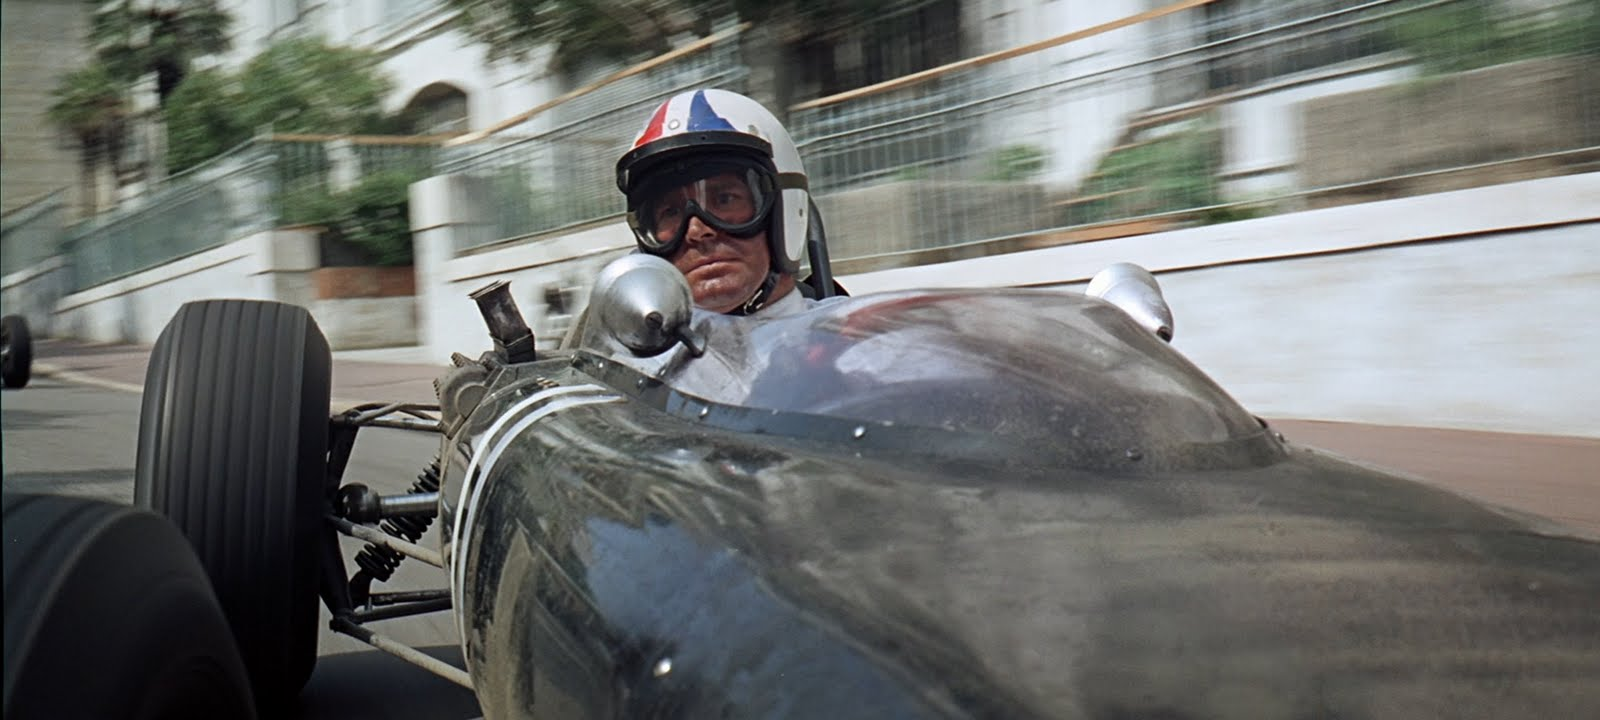 James Garner as Pete Aron in John Frankenheimer's Grand Prix © Respective owner